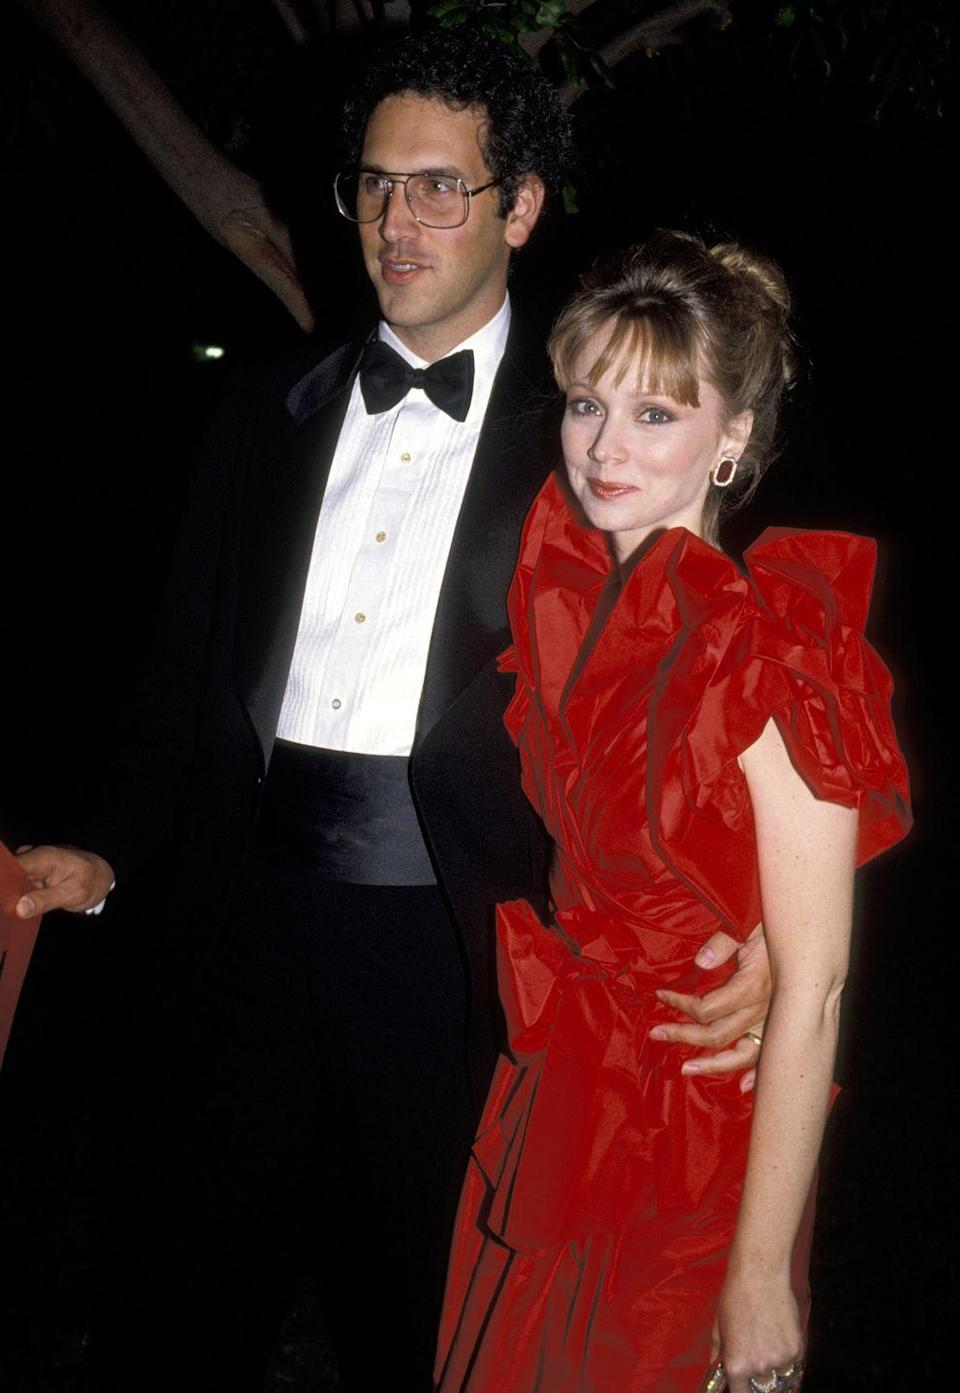 <p>This red gown looked stunning on Diane, umm, I mean Shelley, at the '84 Emmy awards. Complete with a chic updo, gold earrings, and puff sleeves, it was definitely an '80s vibe. </p>